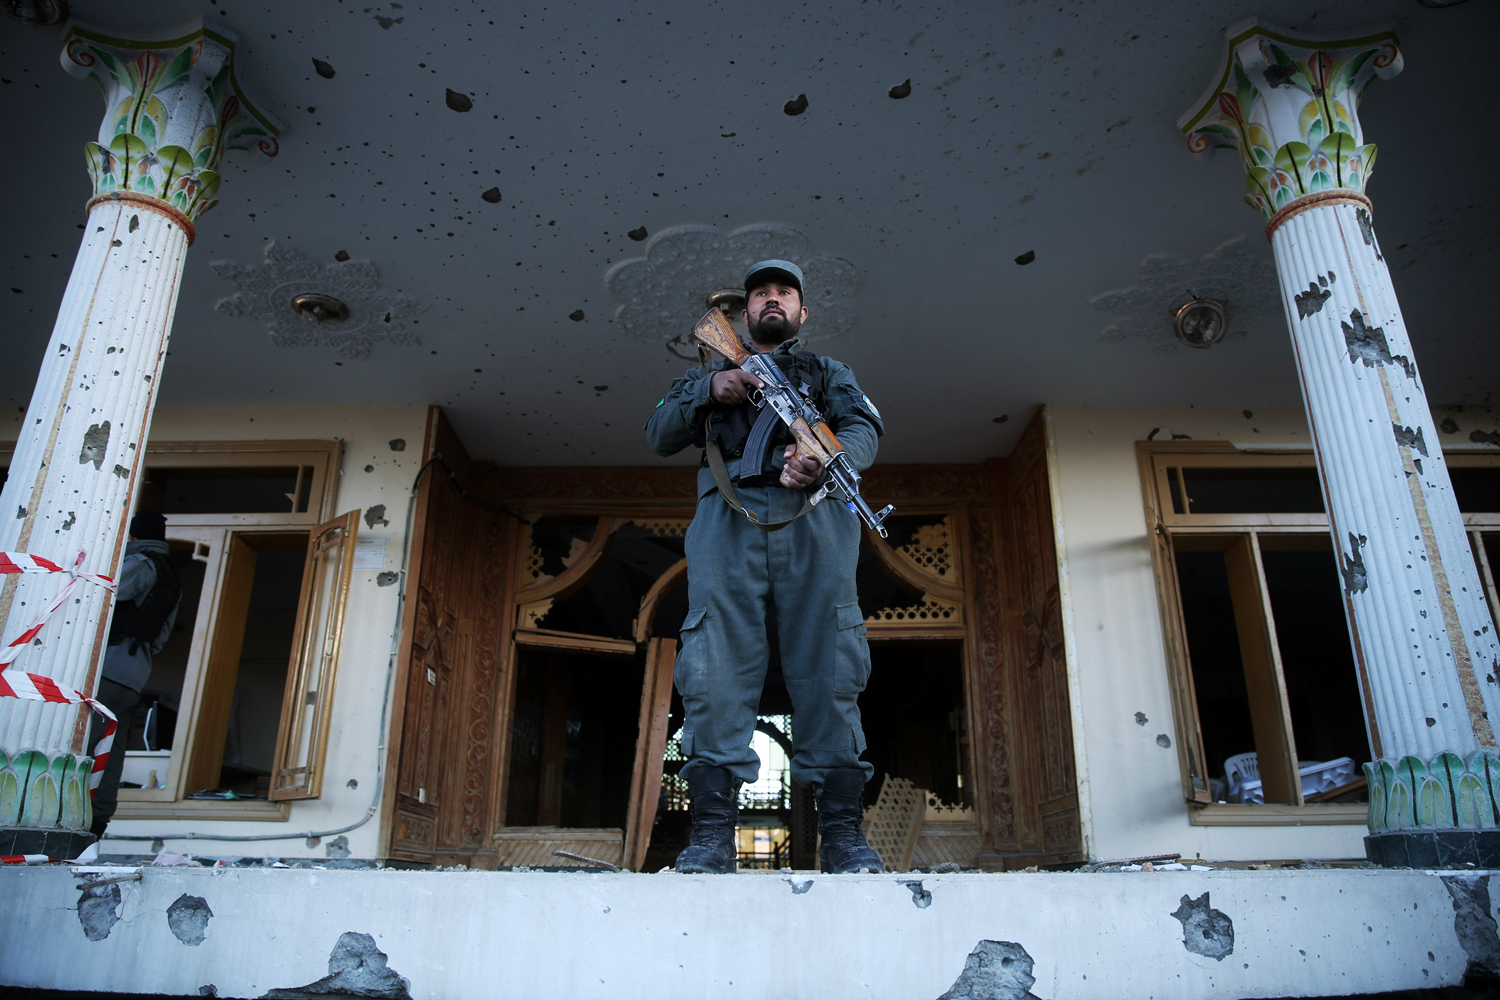 An Afghan policeman stands guard in front of an Independent Elections Commission (IEC) building after a gun battle between security forces and insurgents in Kabul, Afghanistan, Tuesday, March 25, 2014.